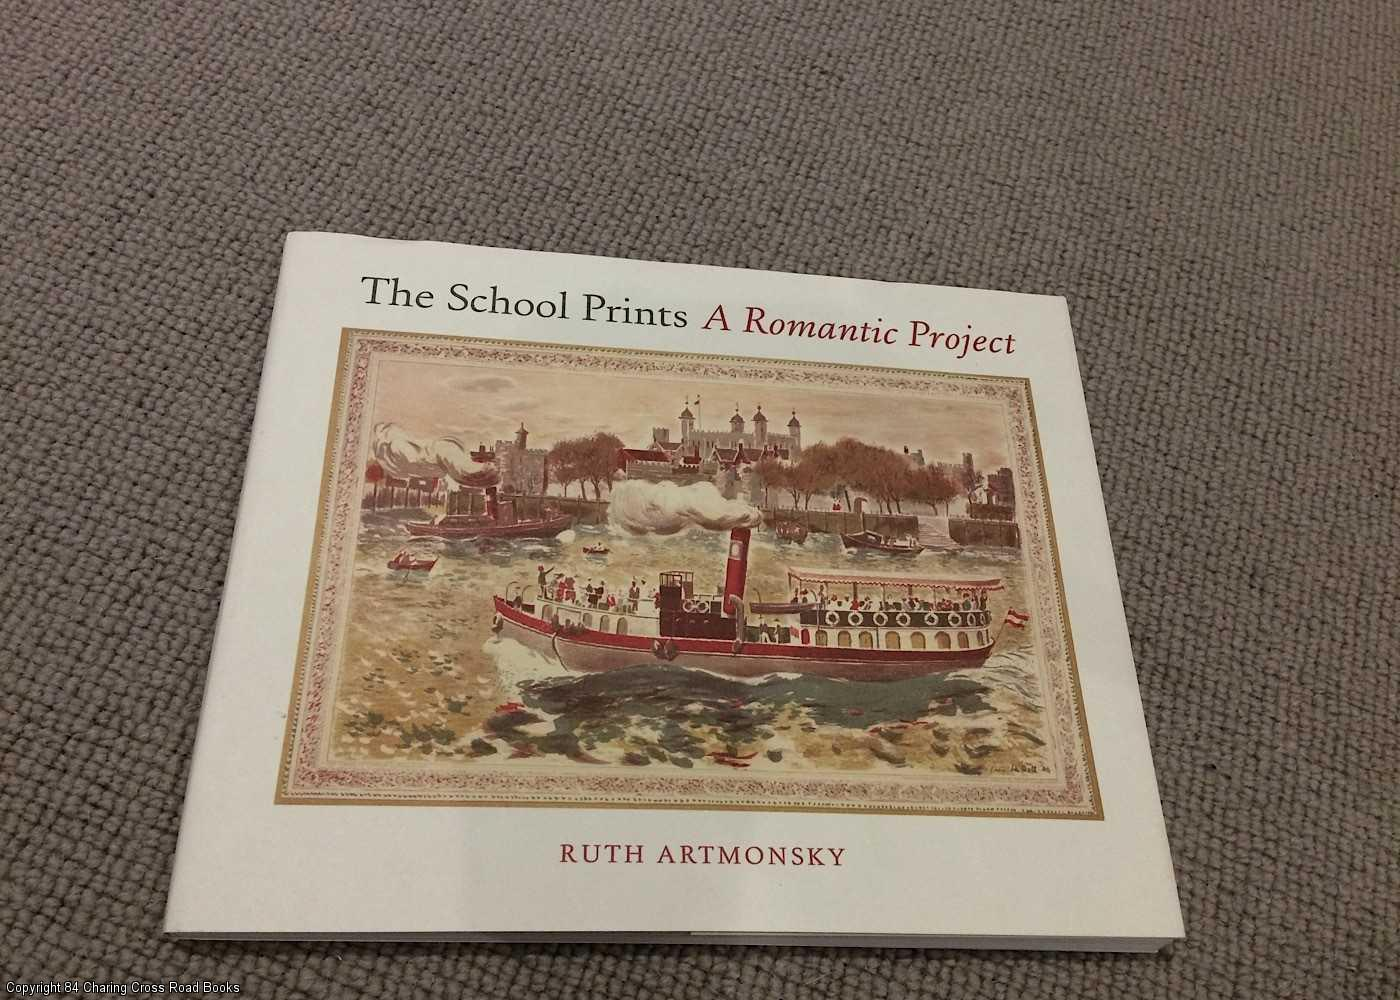 ARTMONSKY, RUTH - The School Prints: A Romantic Project